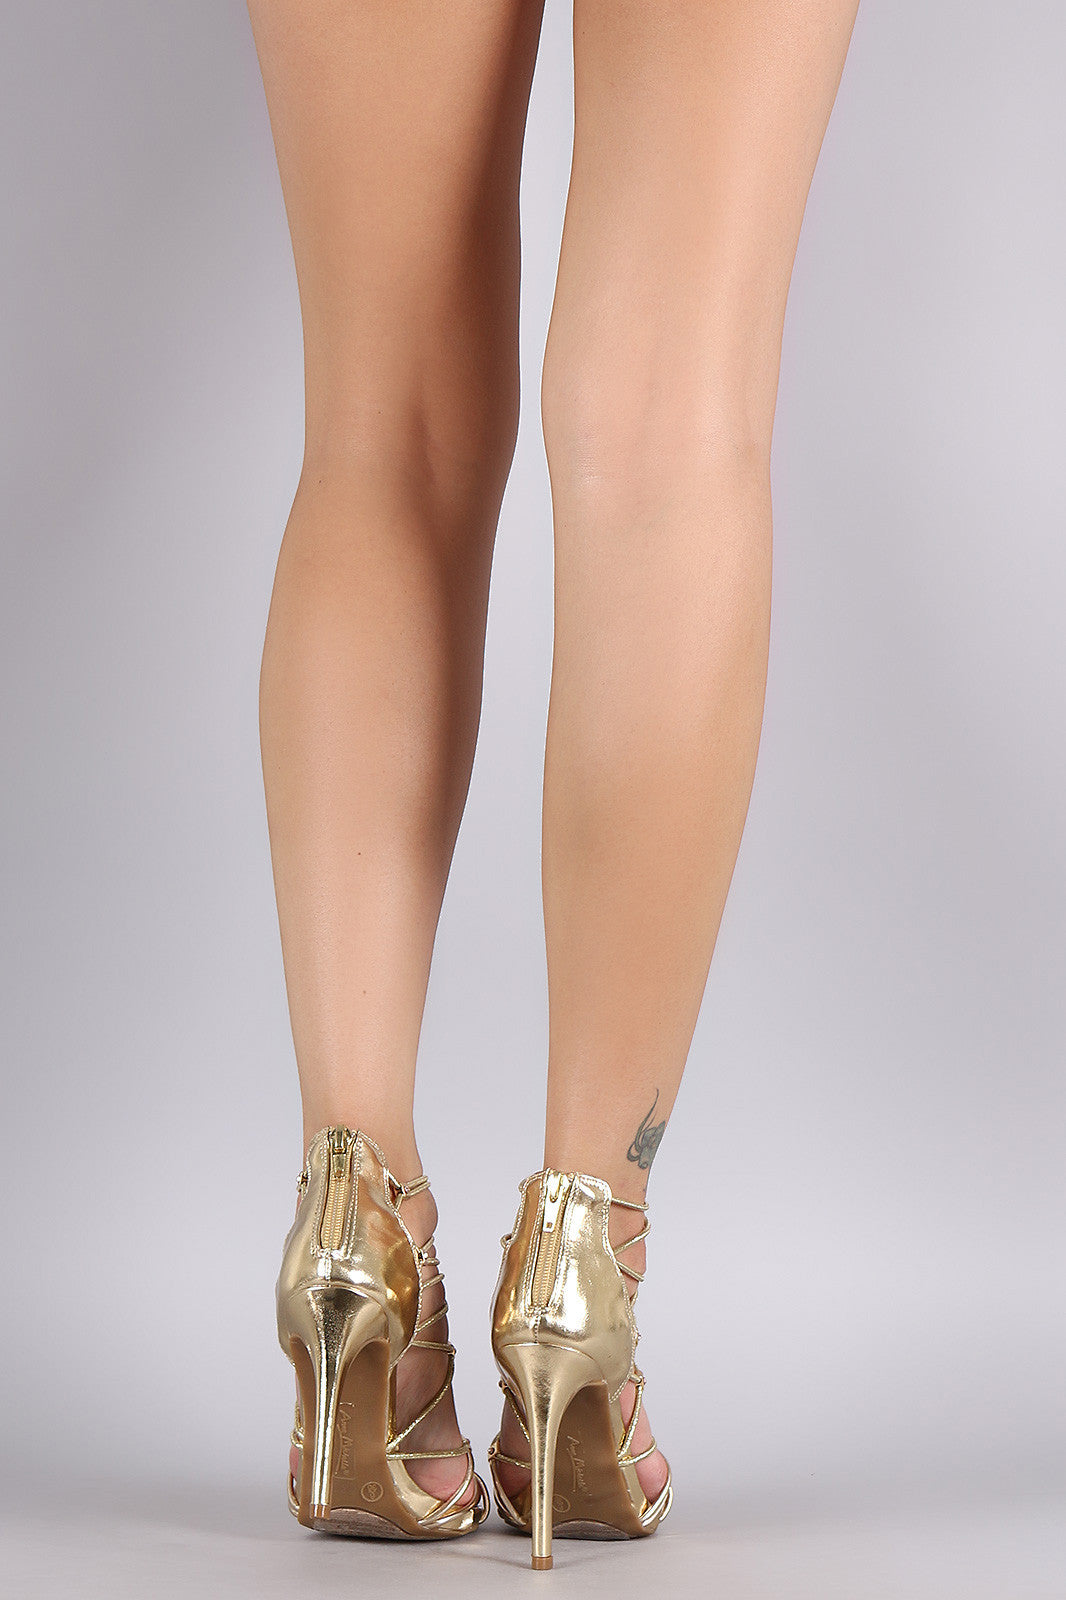 Bamboo Metallic Rhinestone Strappy Stiletto Heel - Thick 'N' Curvy Shop - 3